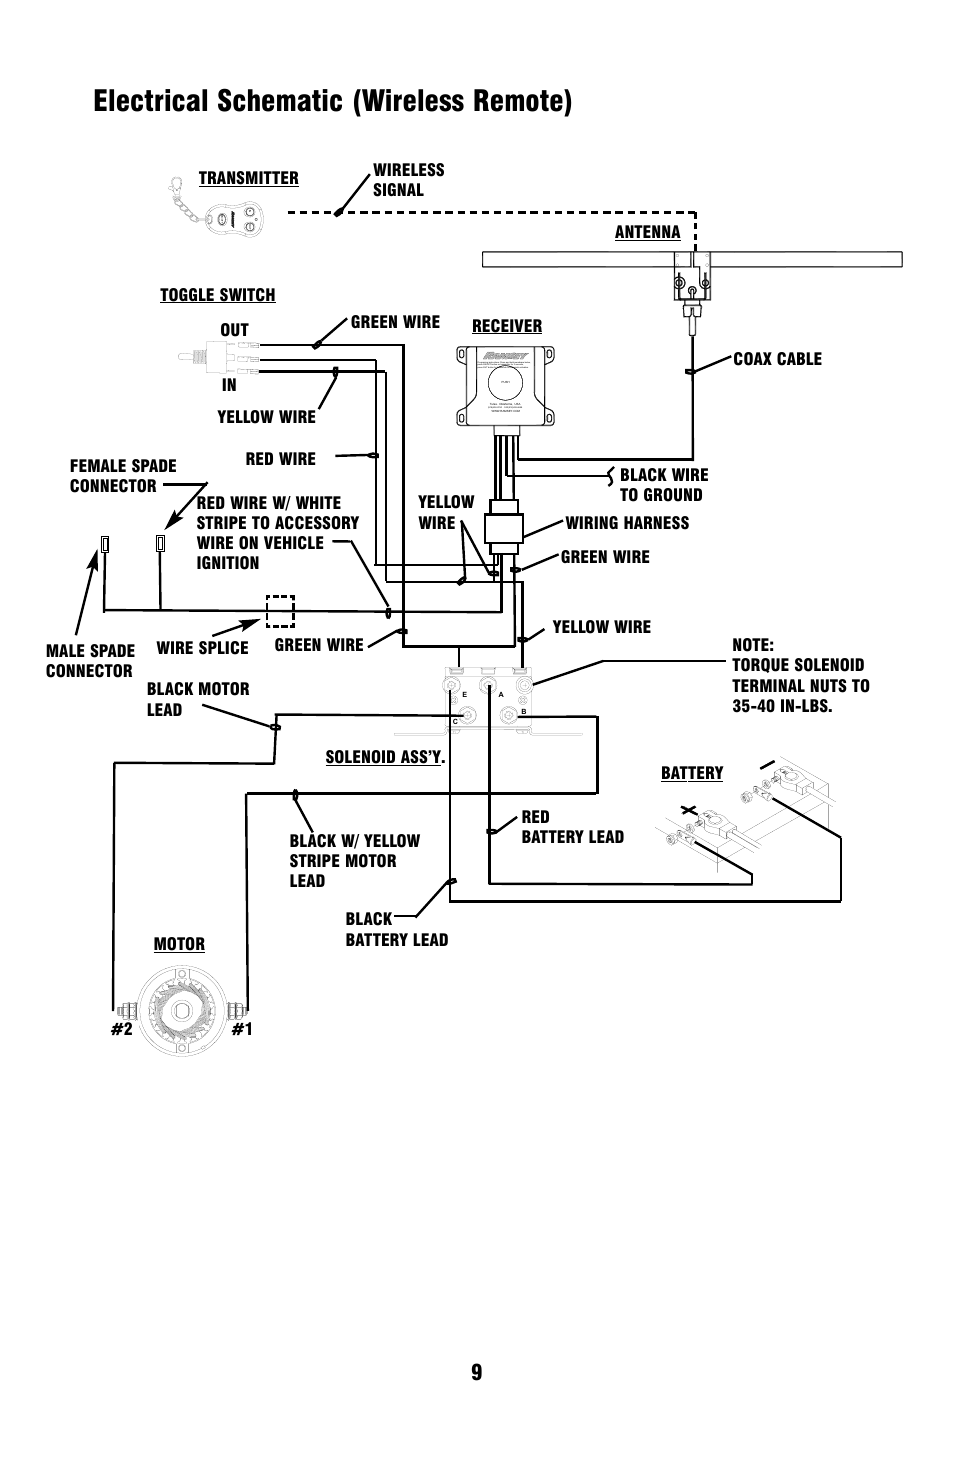 hight resolution of electrical schematic wireless remote wire splice ramsey winch winch motor wiring electrical schematic